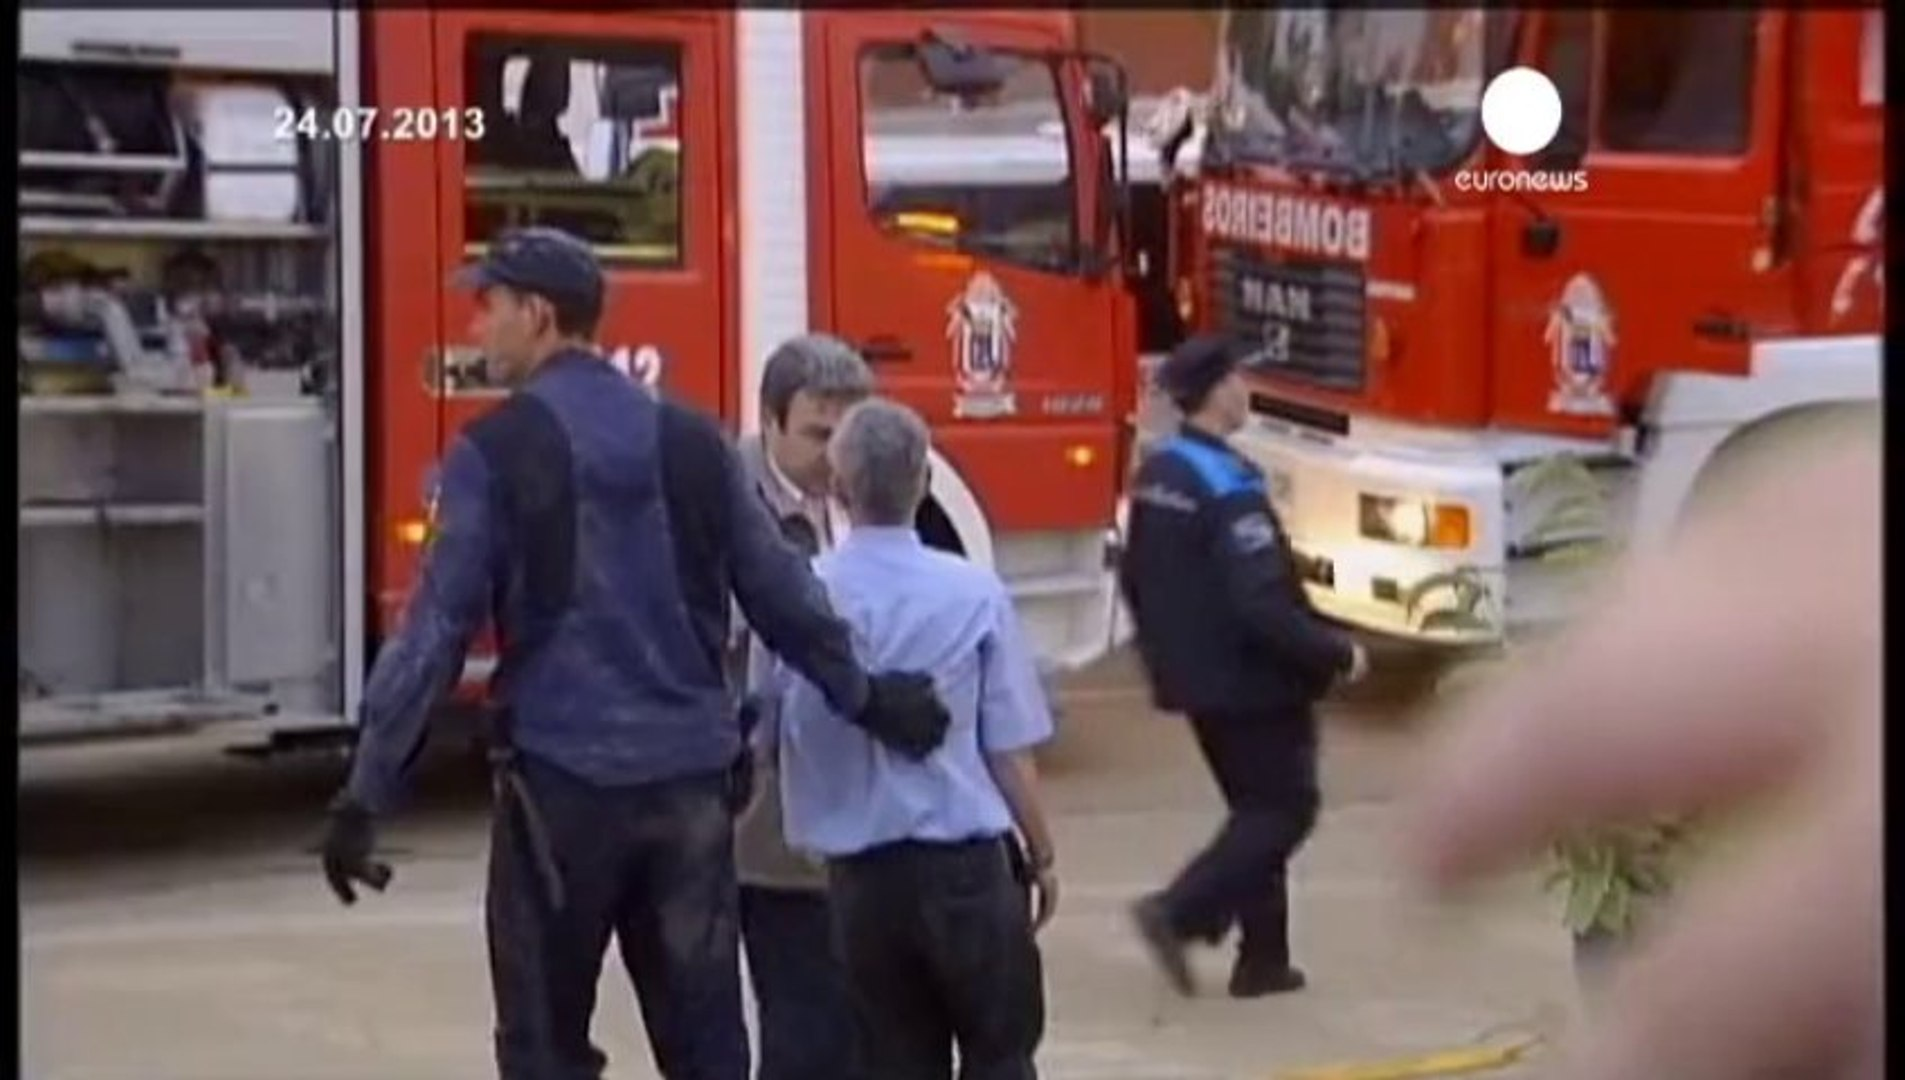 Train driver charged but released under conditions in Spain